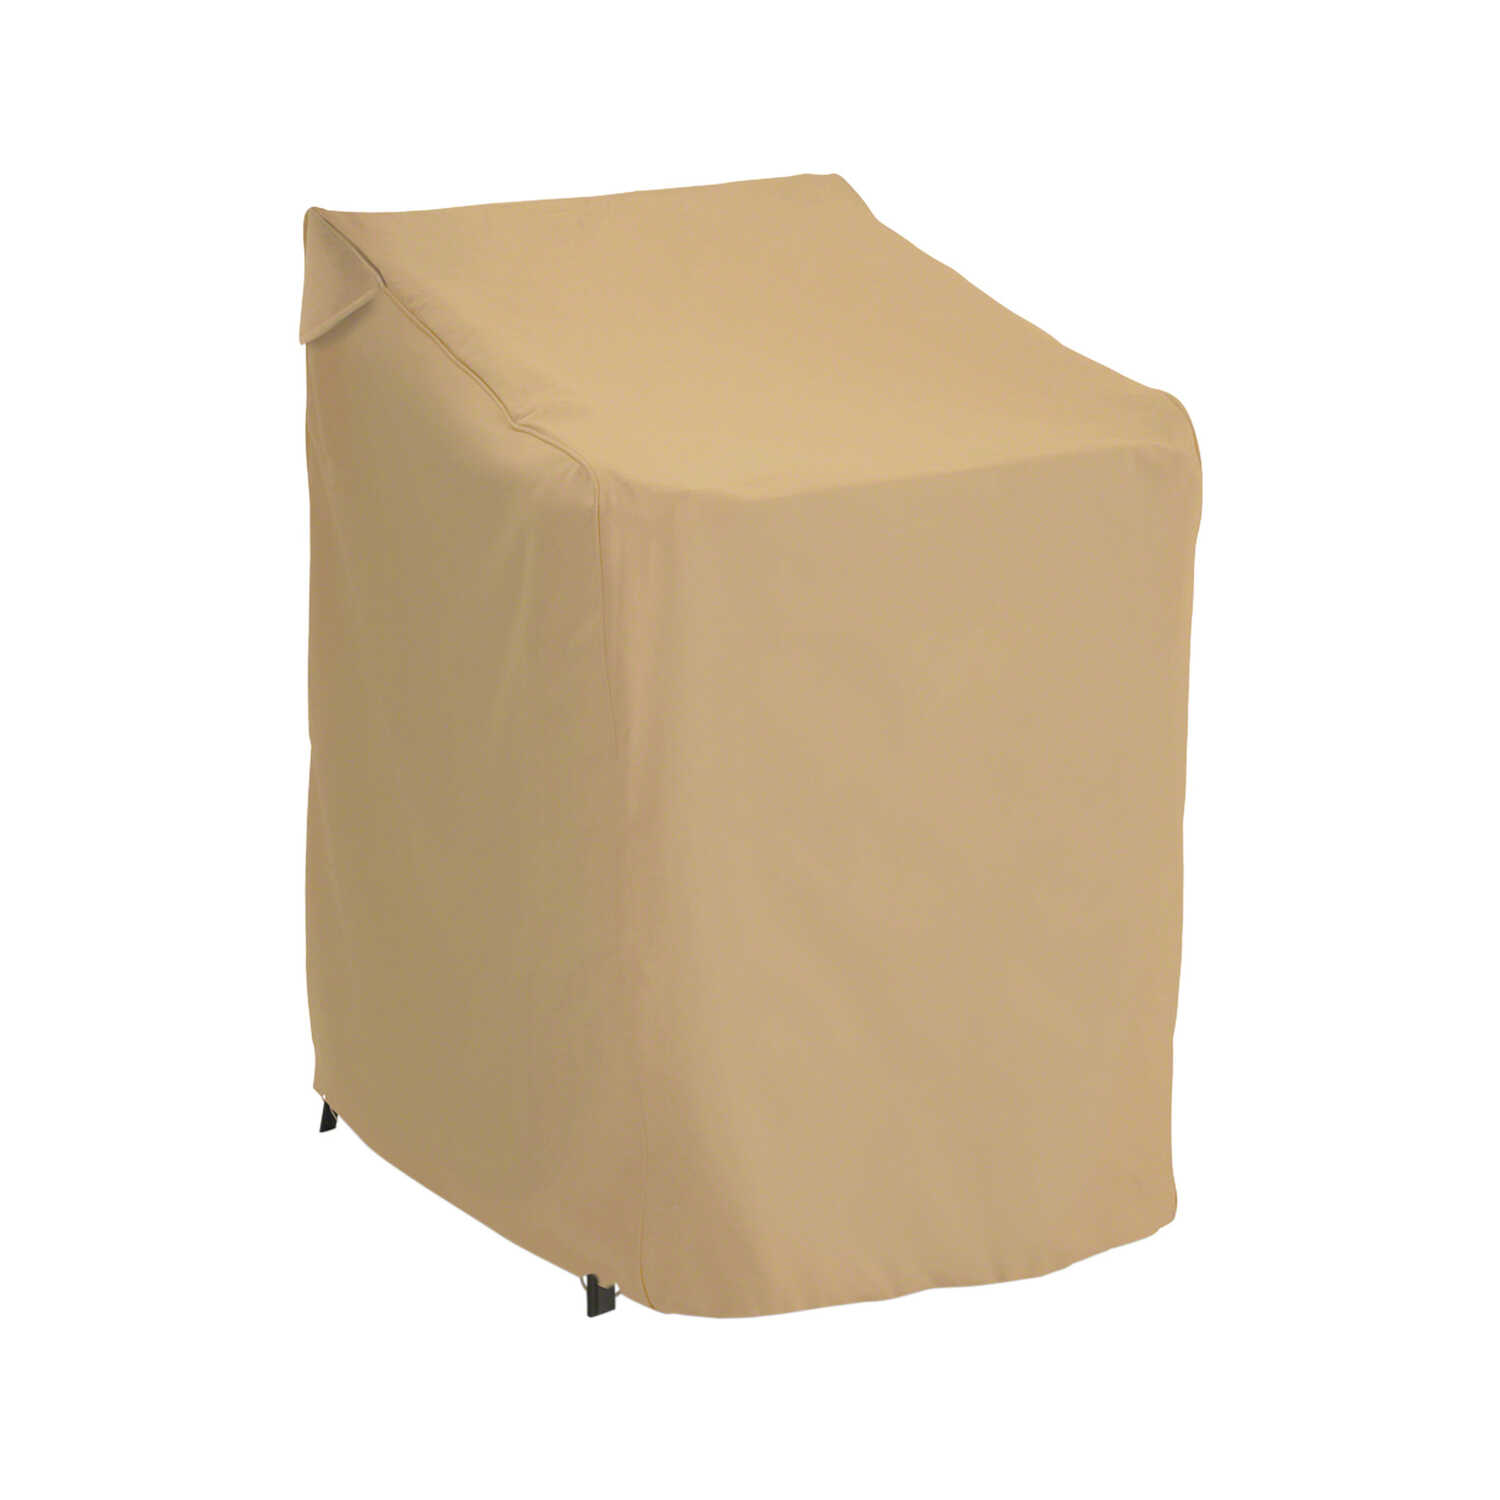 Classic Accessories  47 in. H x 28 in. W x 36 in. L Brown  Polyester  Chair Cover